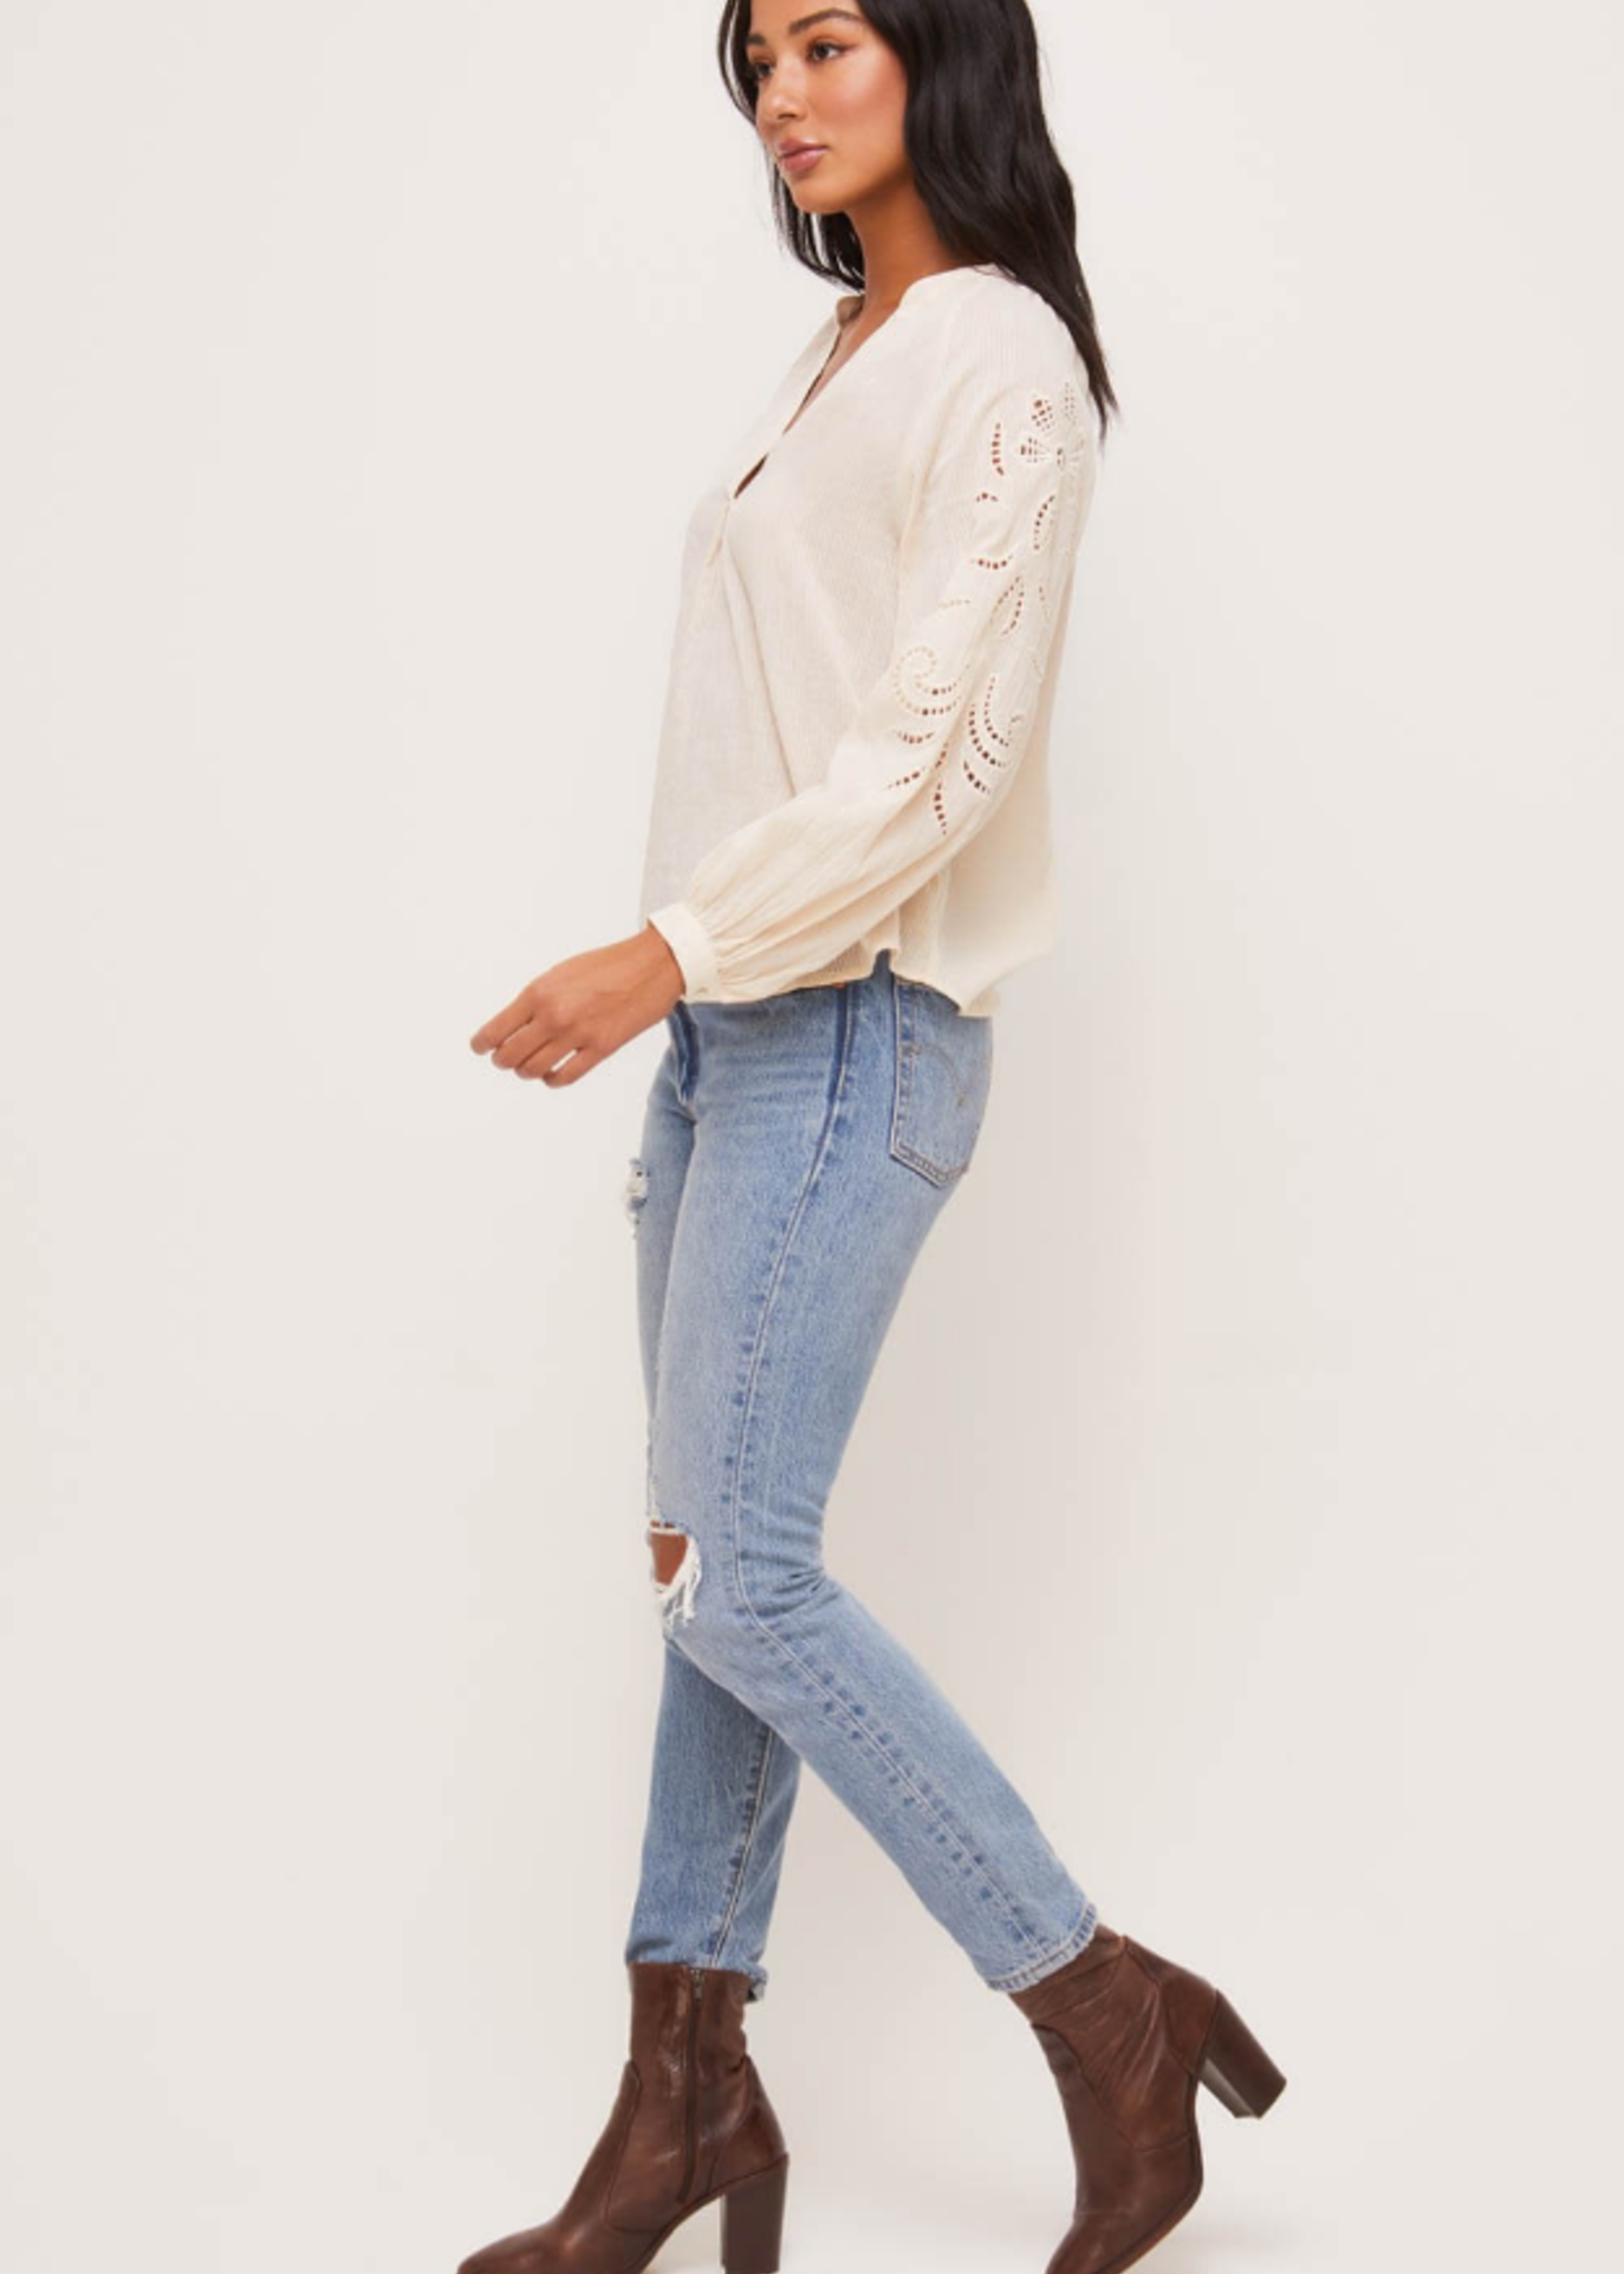 Lush Lace Embroidered Top - Cream